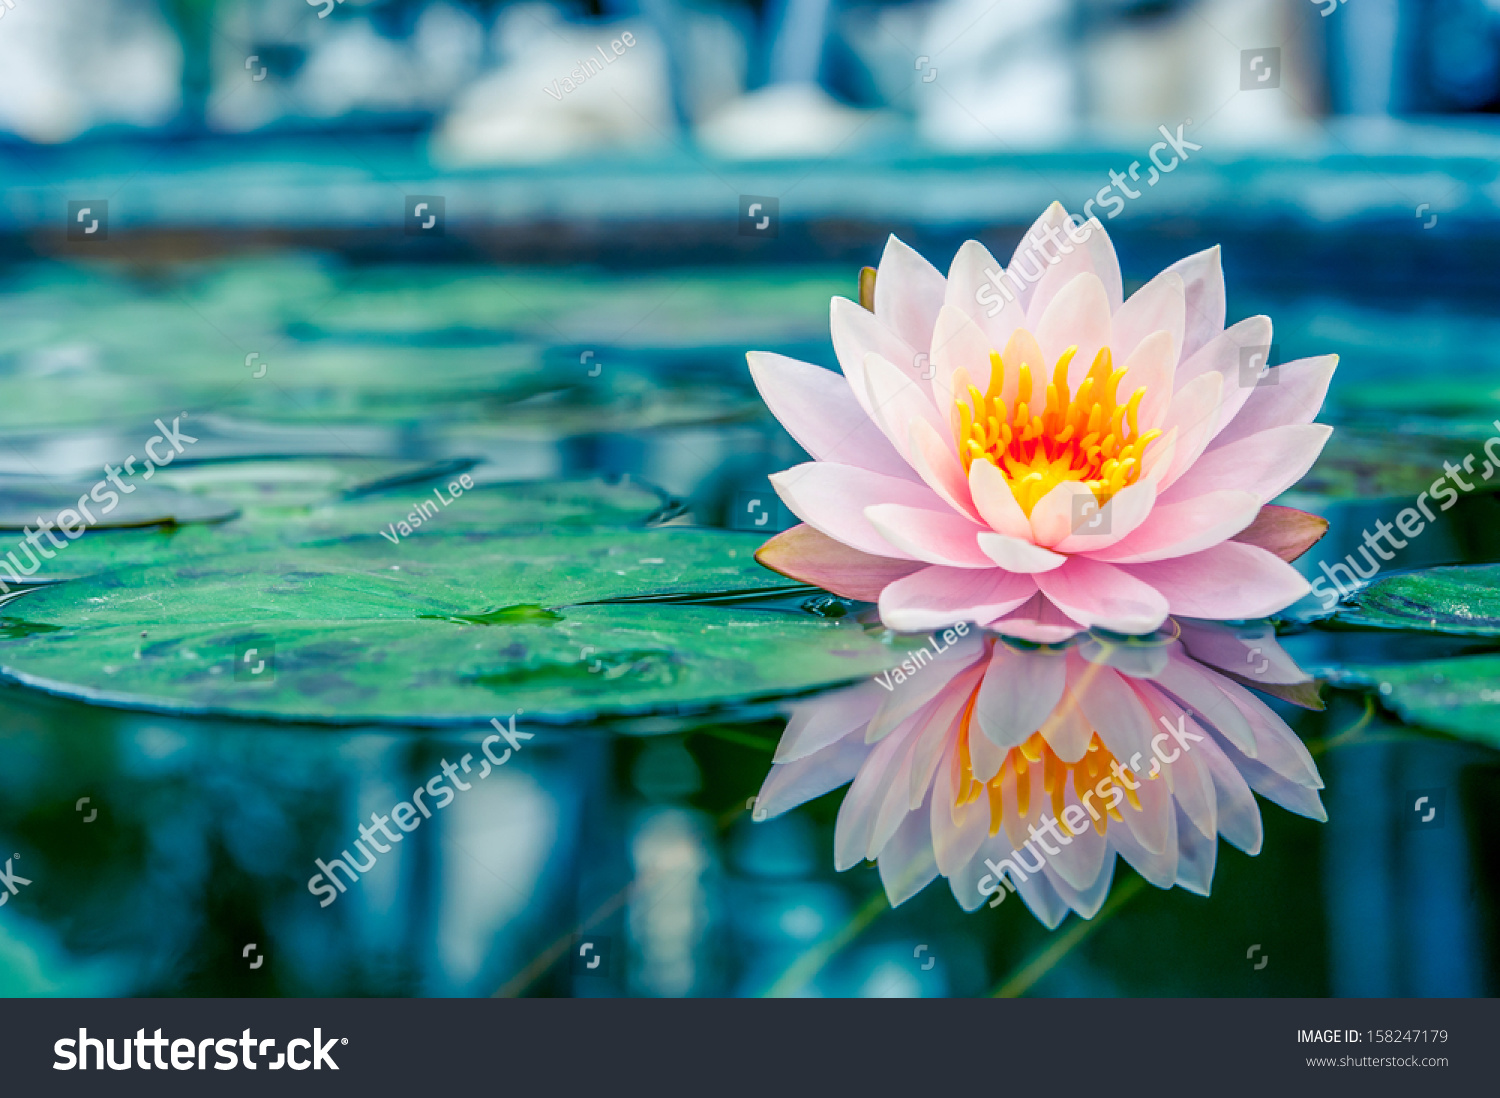 lotus in water plant diagram 2007 ford f150 power window wiring beautiful pink reflection stock photo